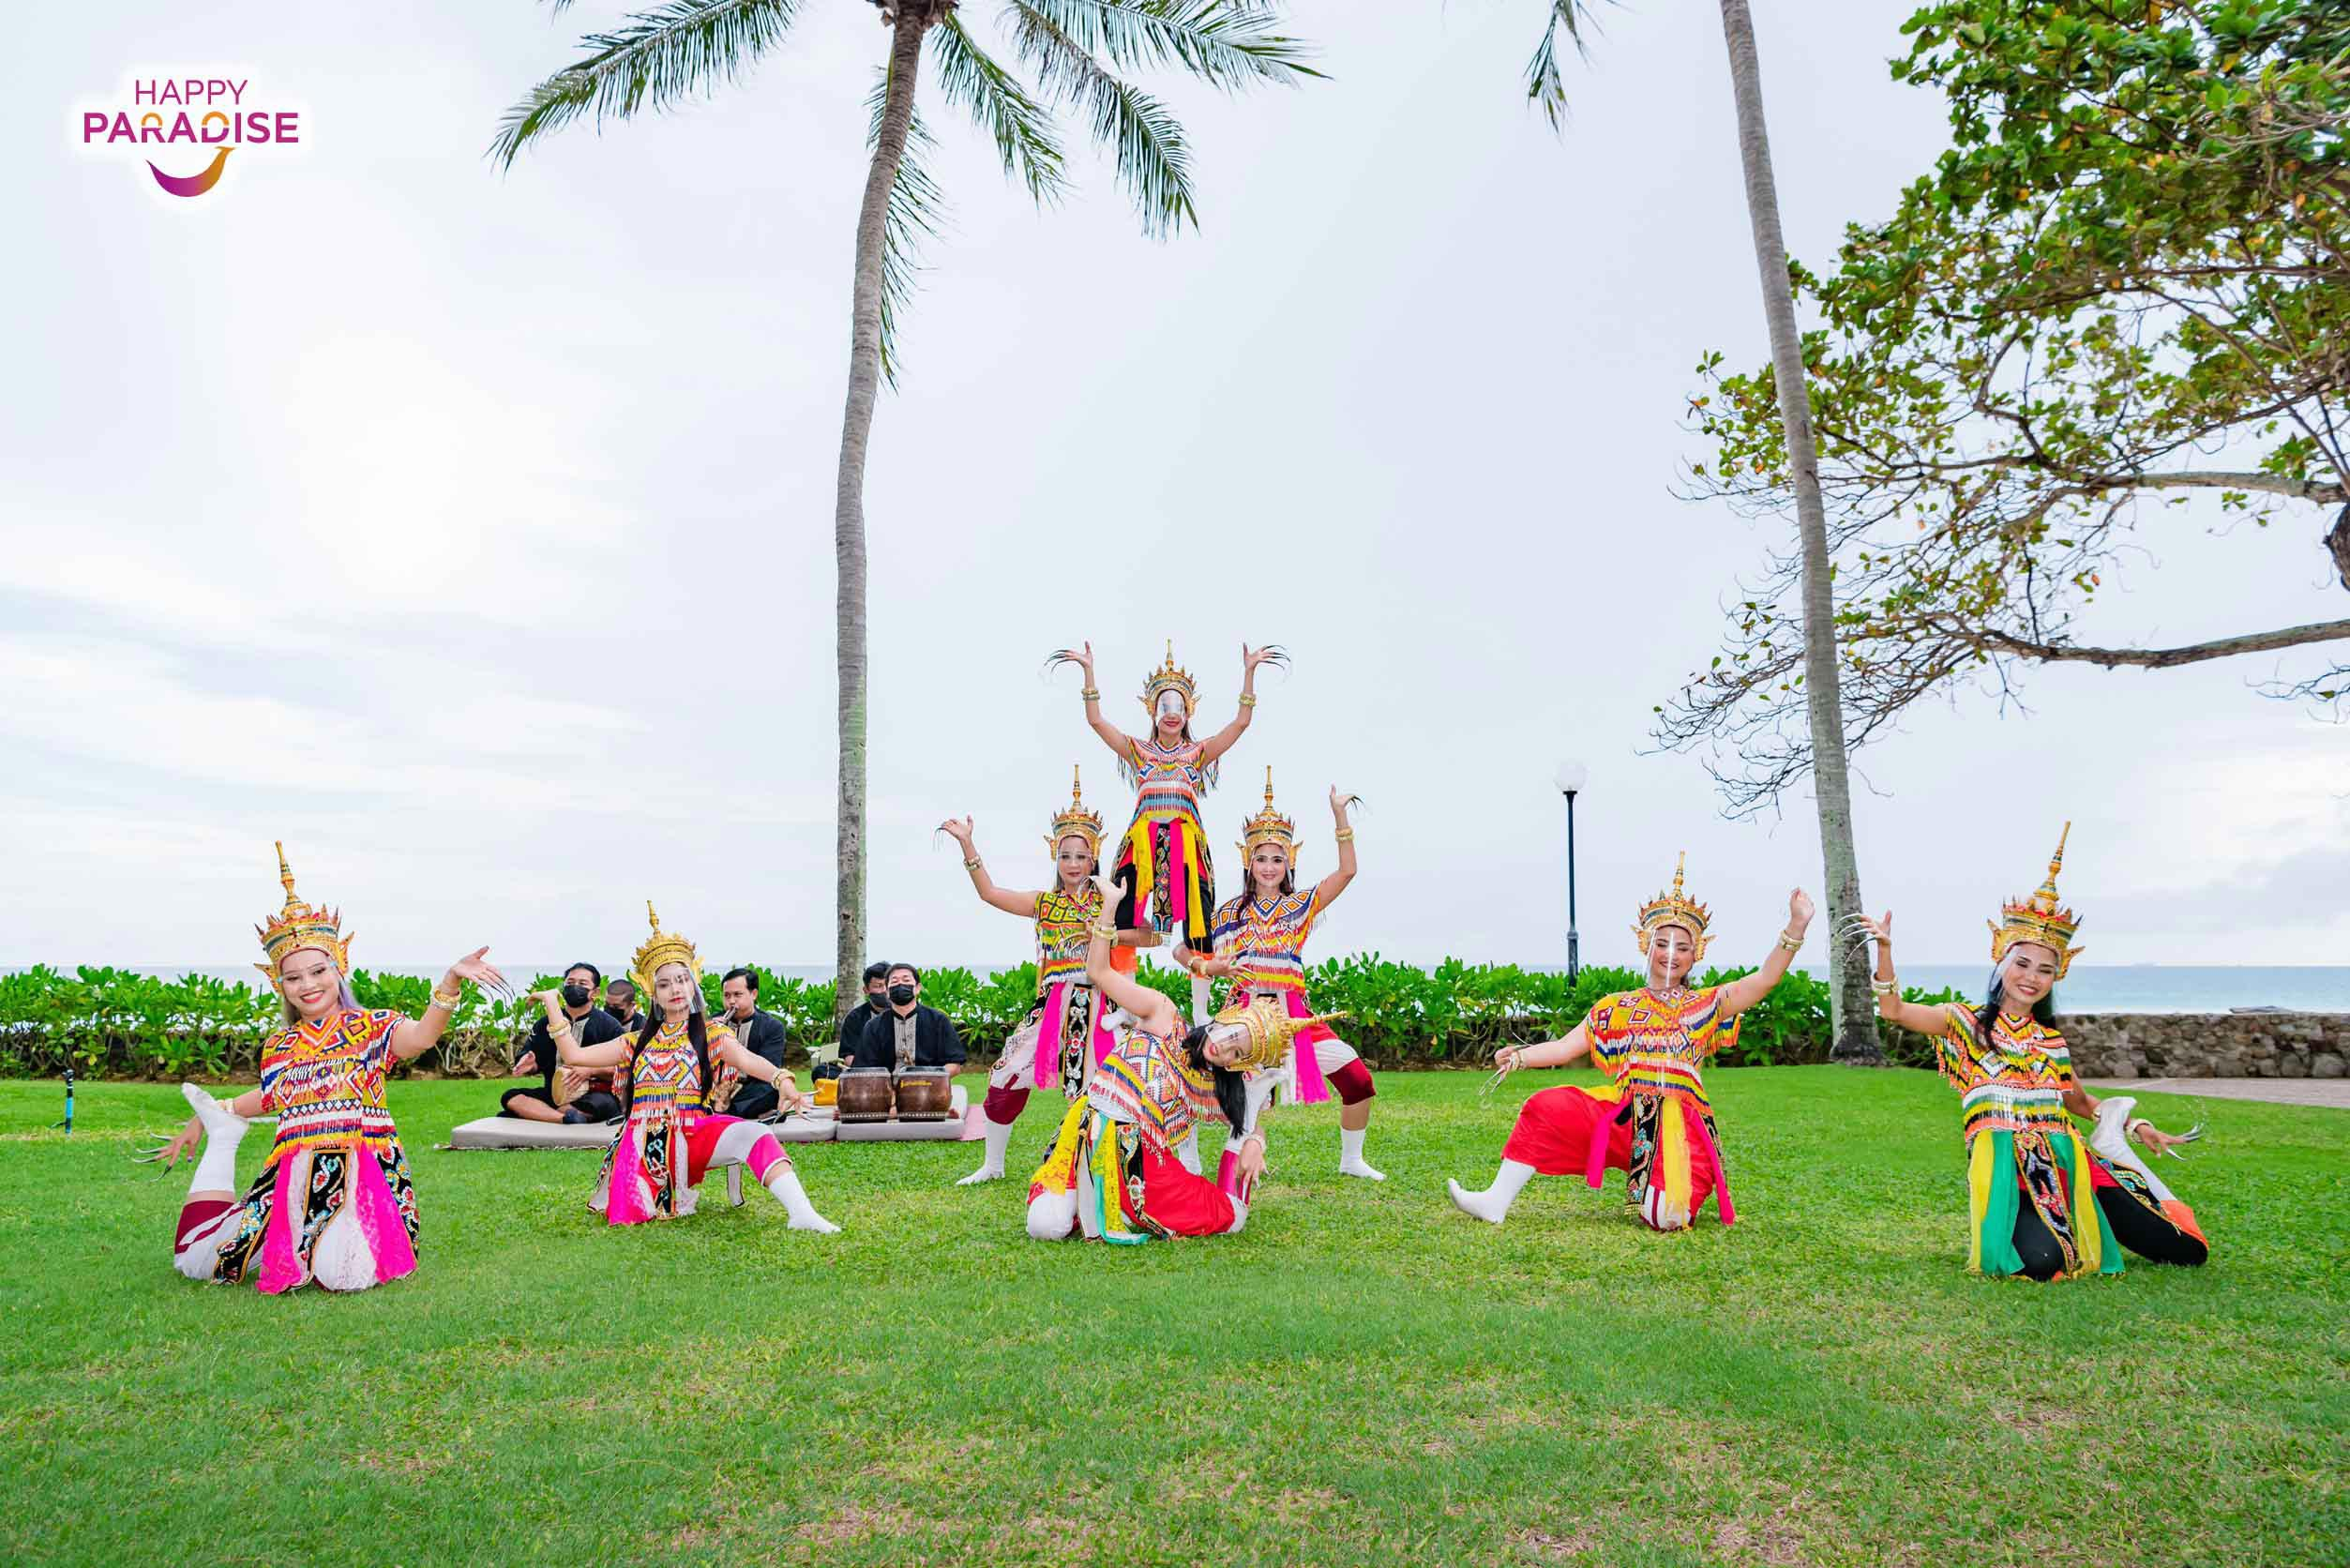 TAT Presents Entertaining Southern Shows to Welcome Tourists Under the Happy Paradise Campaign